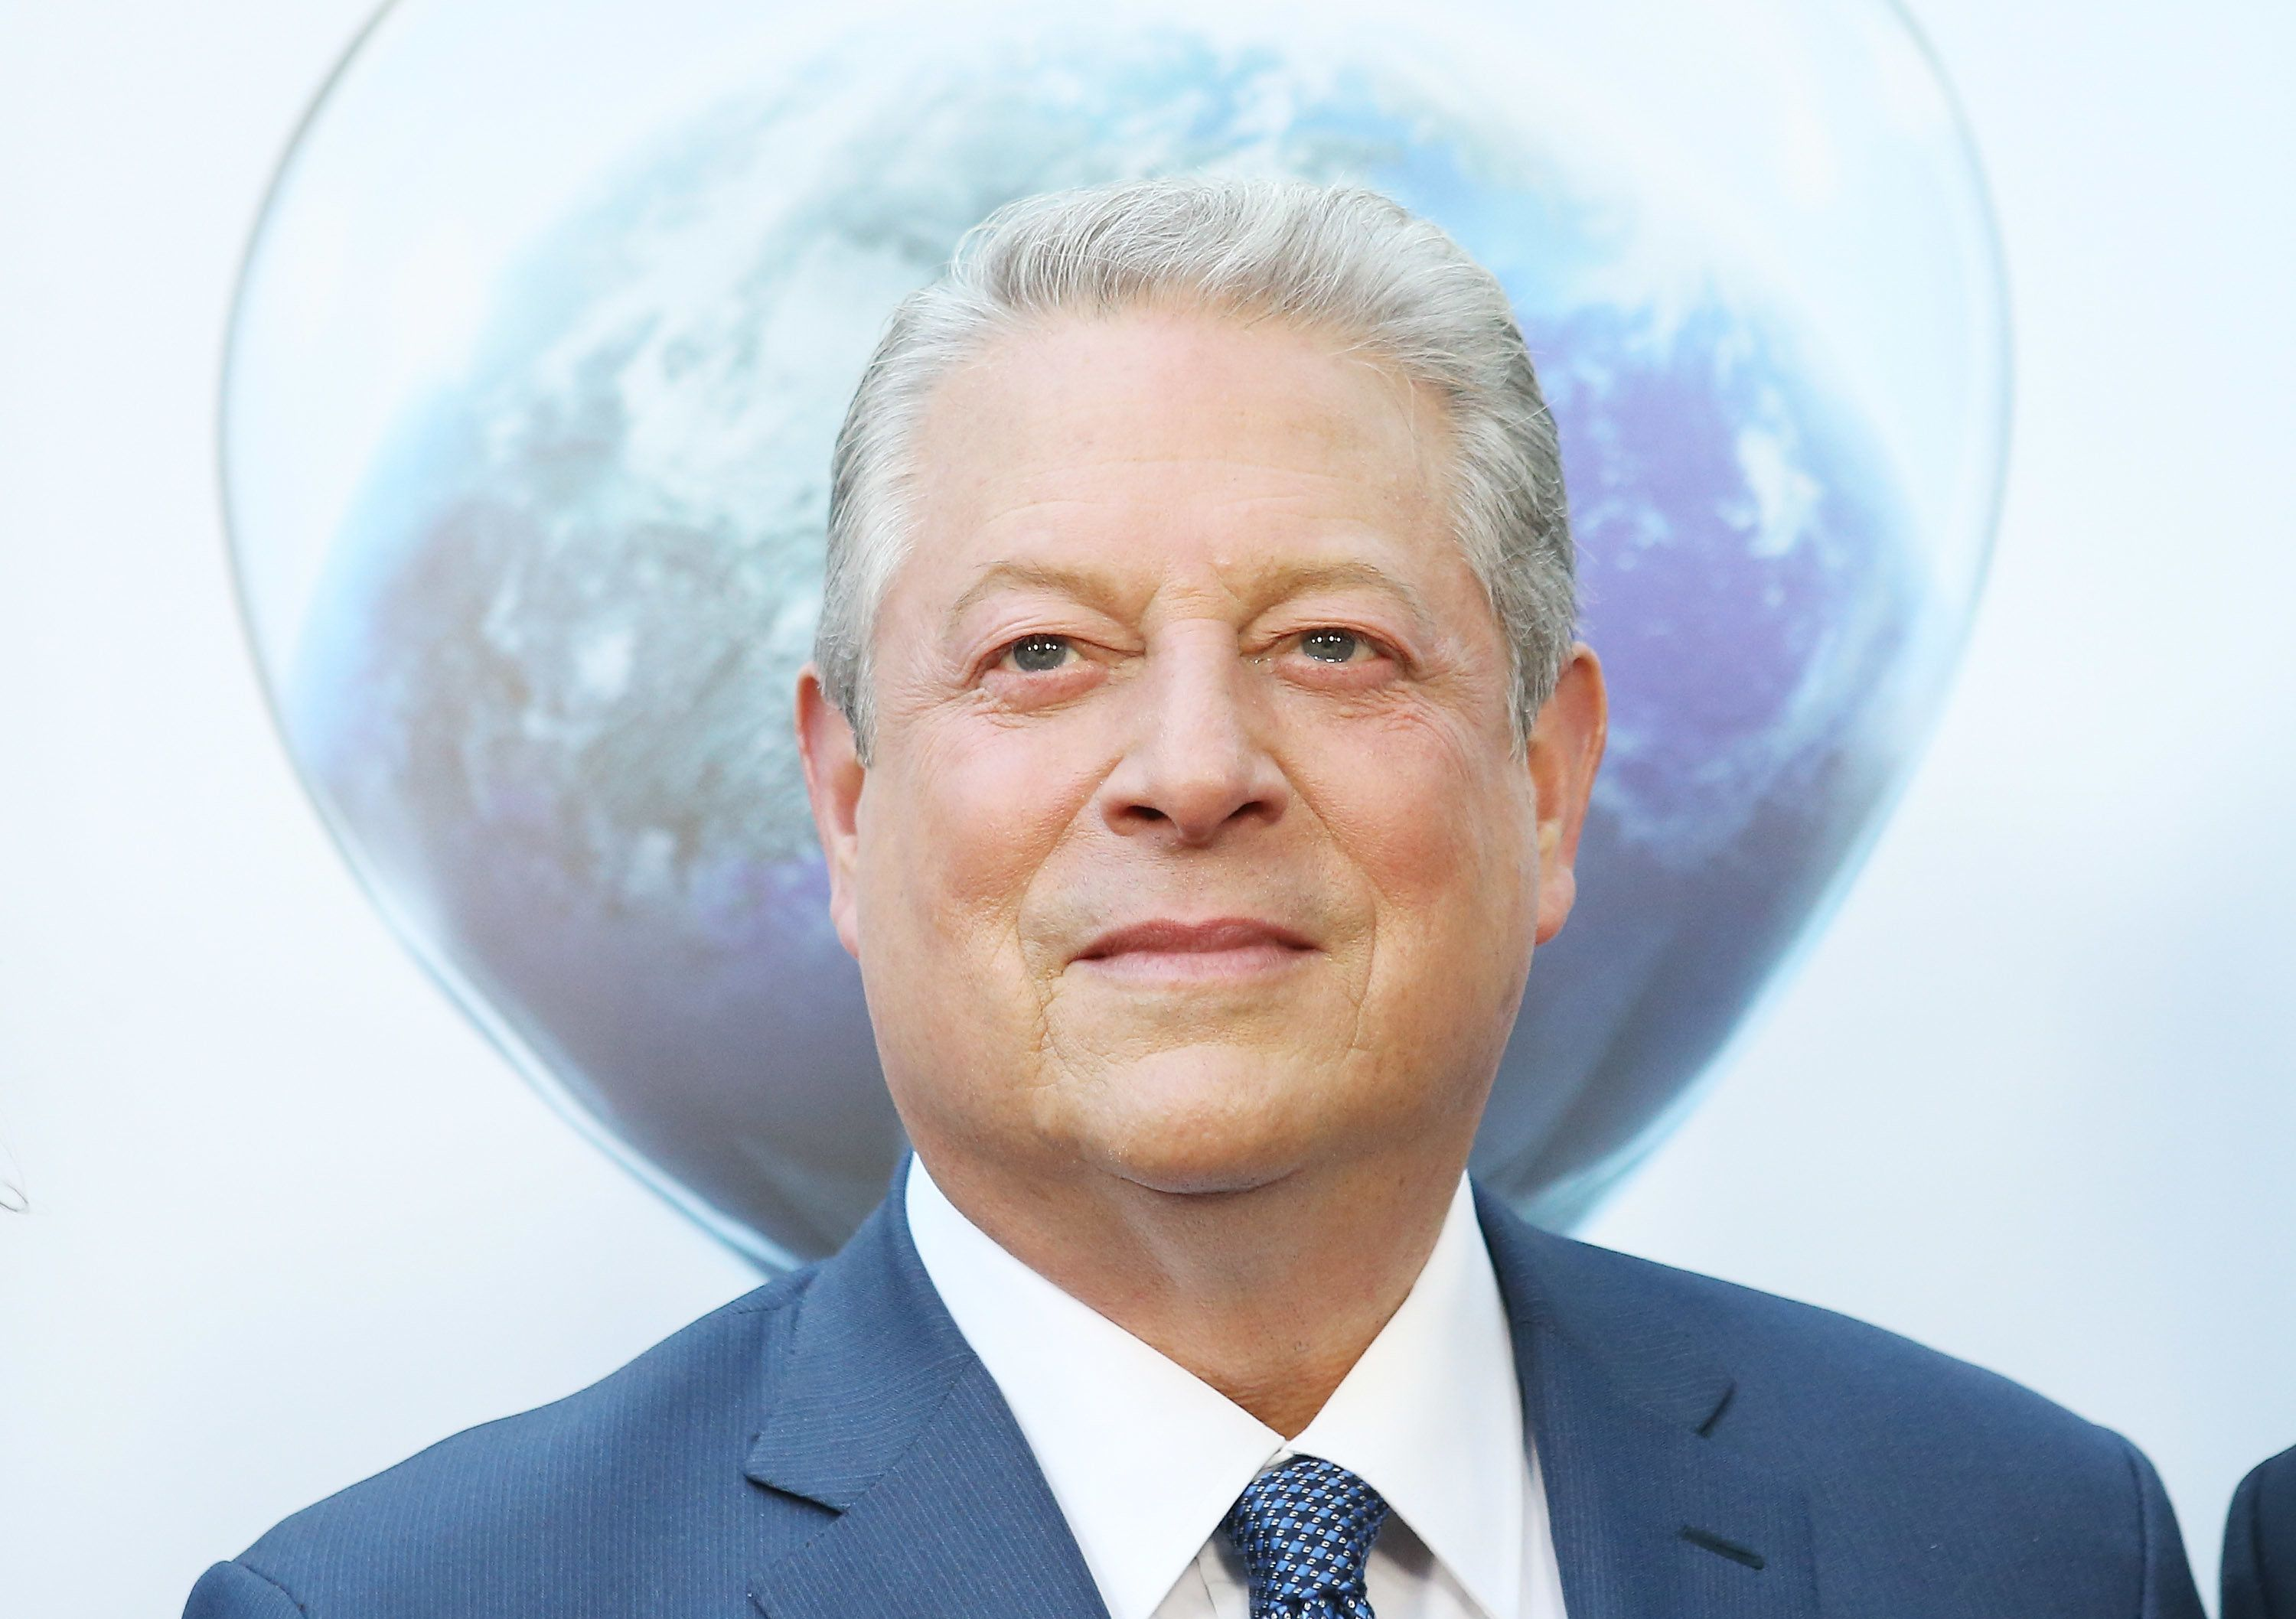 HOLLYWOOD, CA - JULY 25:  Former Vice President of the United States, Al Gore arrives at the Los Angeles premiere of Paramount Pictures' 'An Inconvenient Sequel: Truth To Power' held at ArcLight Hollywood on July 25, 2017 in Hollywood, California.  (Photo by Michael Tran/FilmMagic)